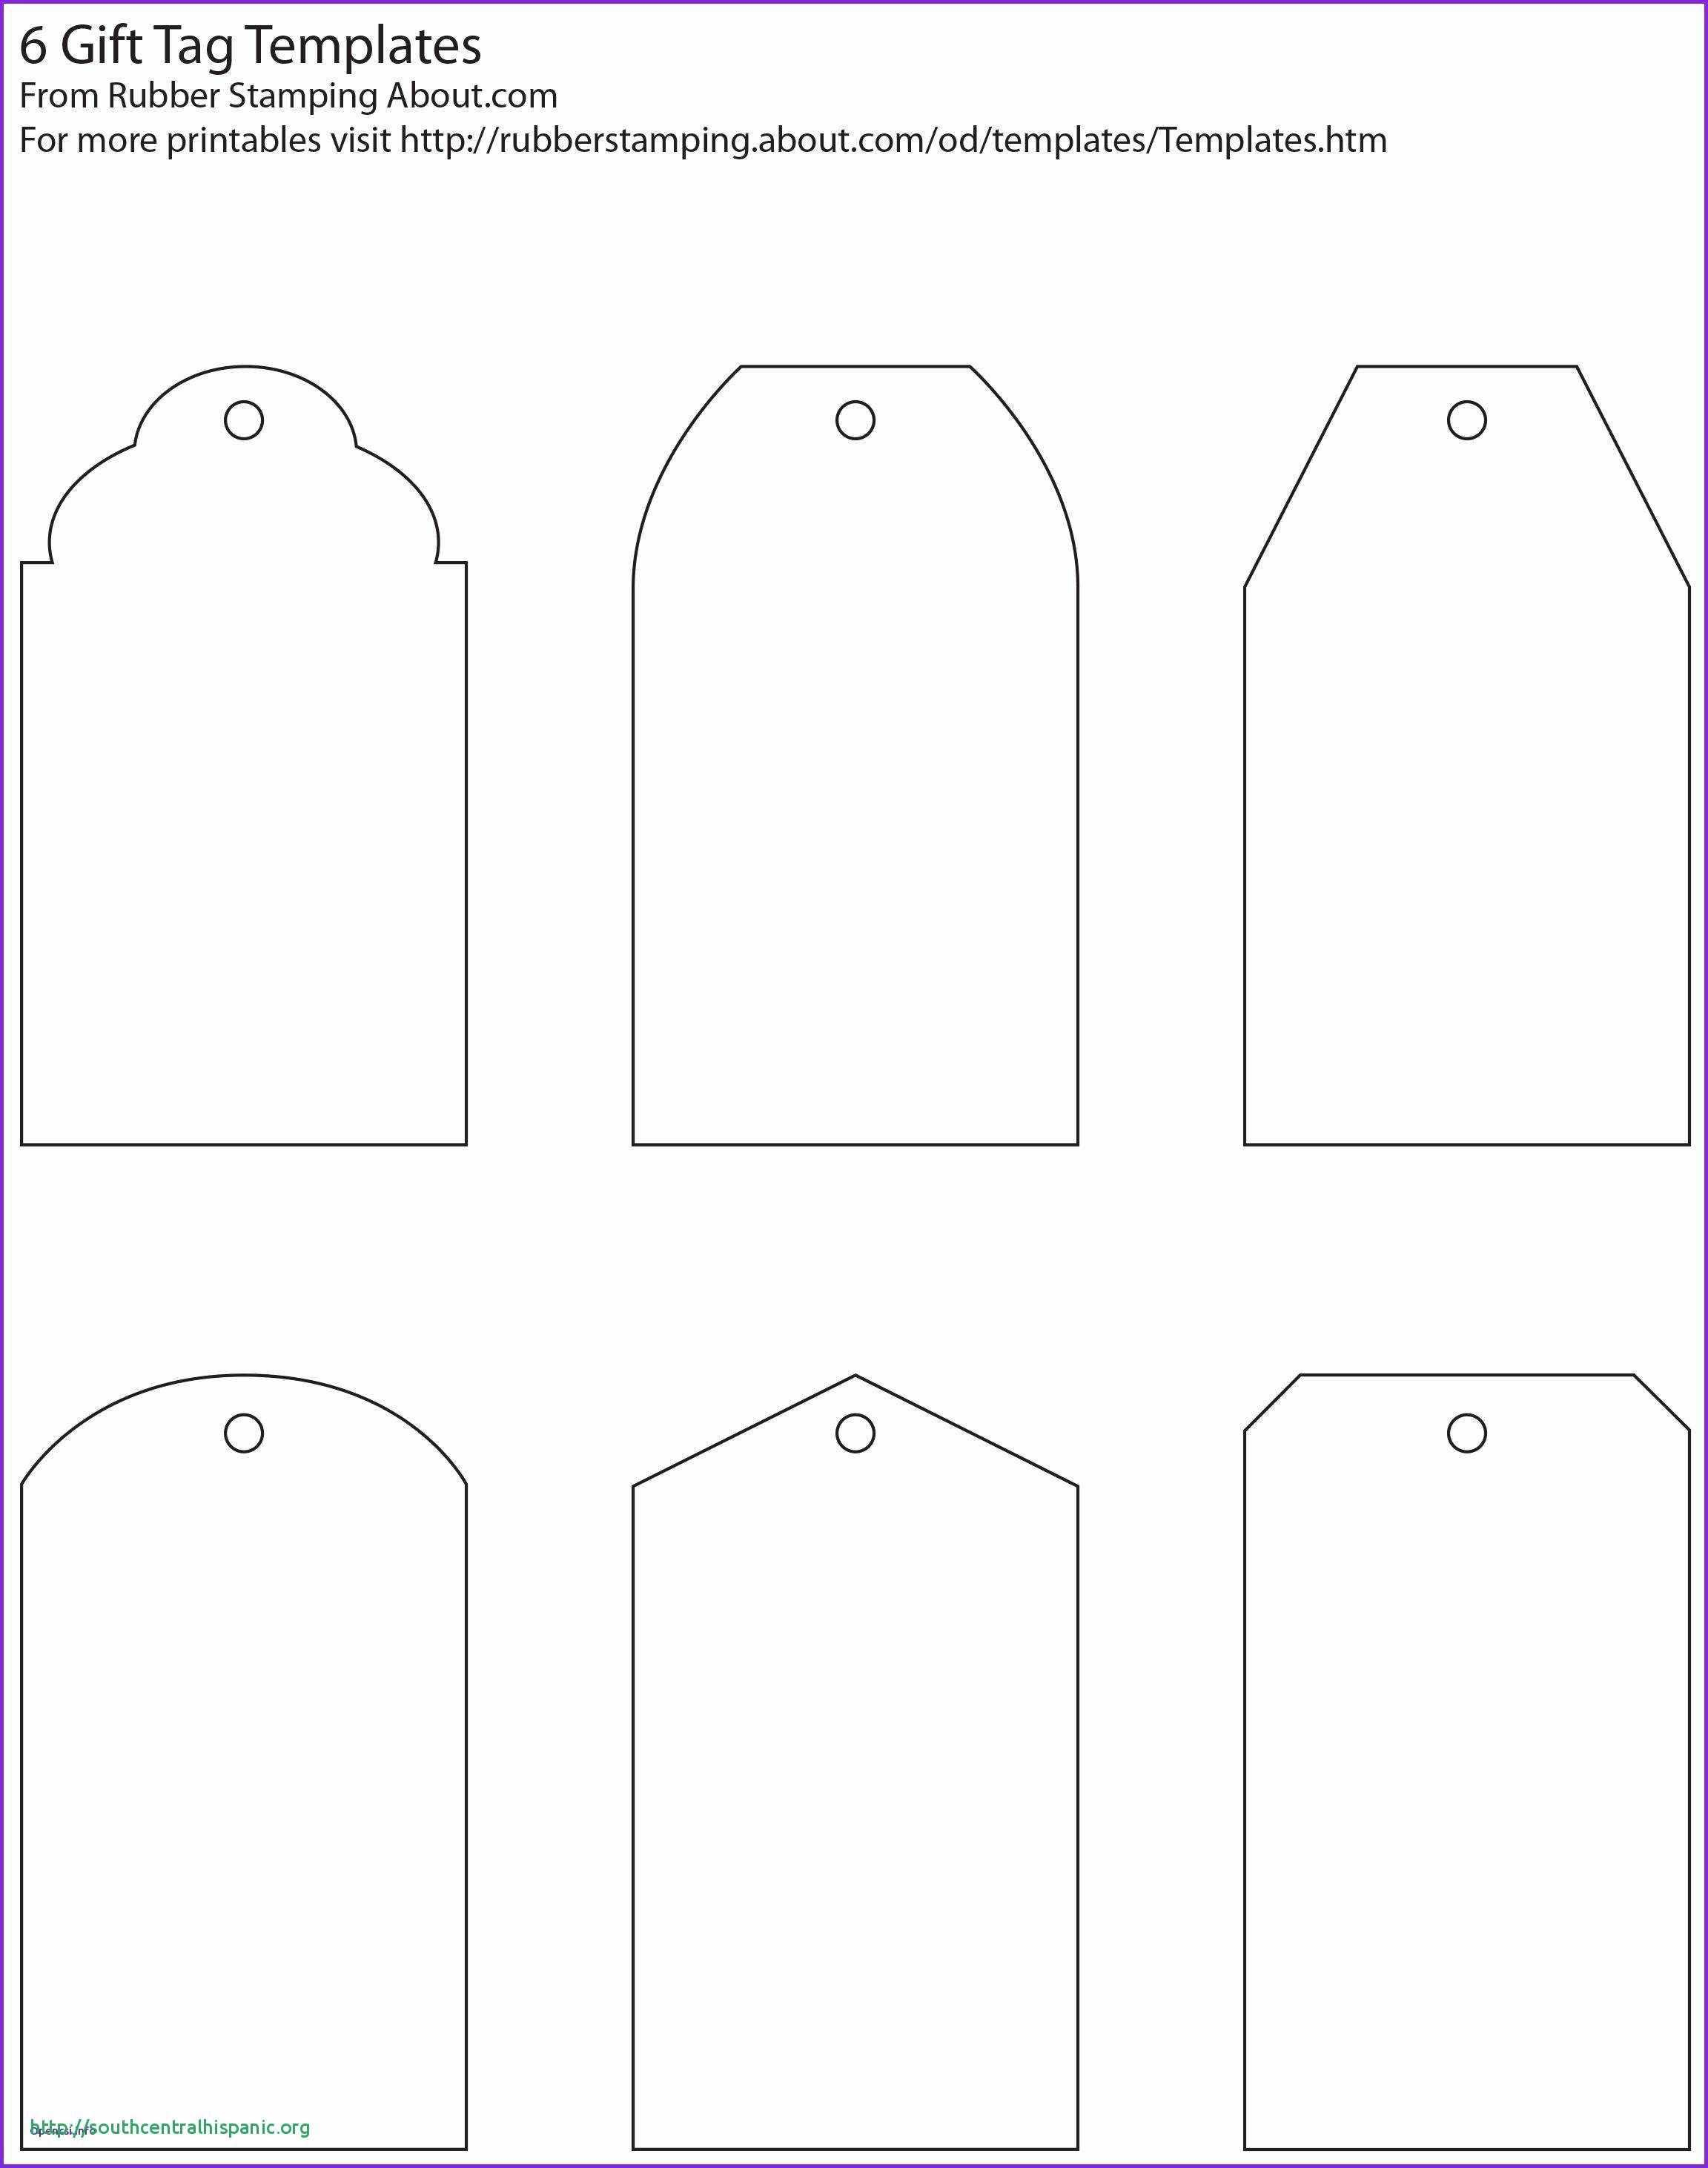 009 Place Card Template Free Download Word Avery Name Tag - Free Printable Place Cards Template